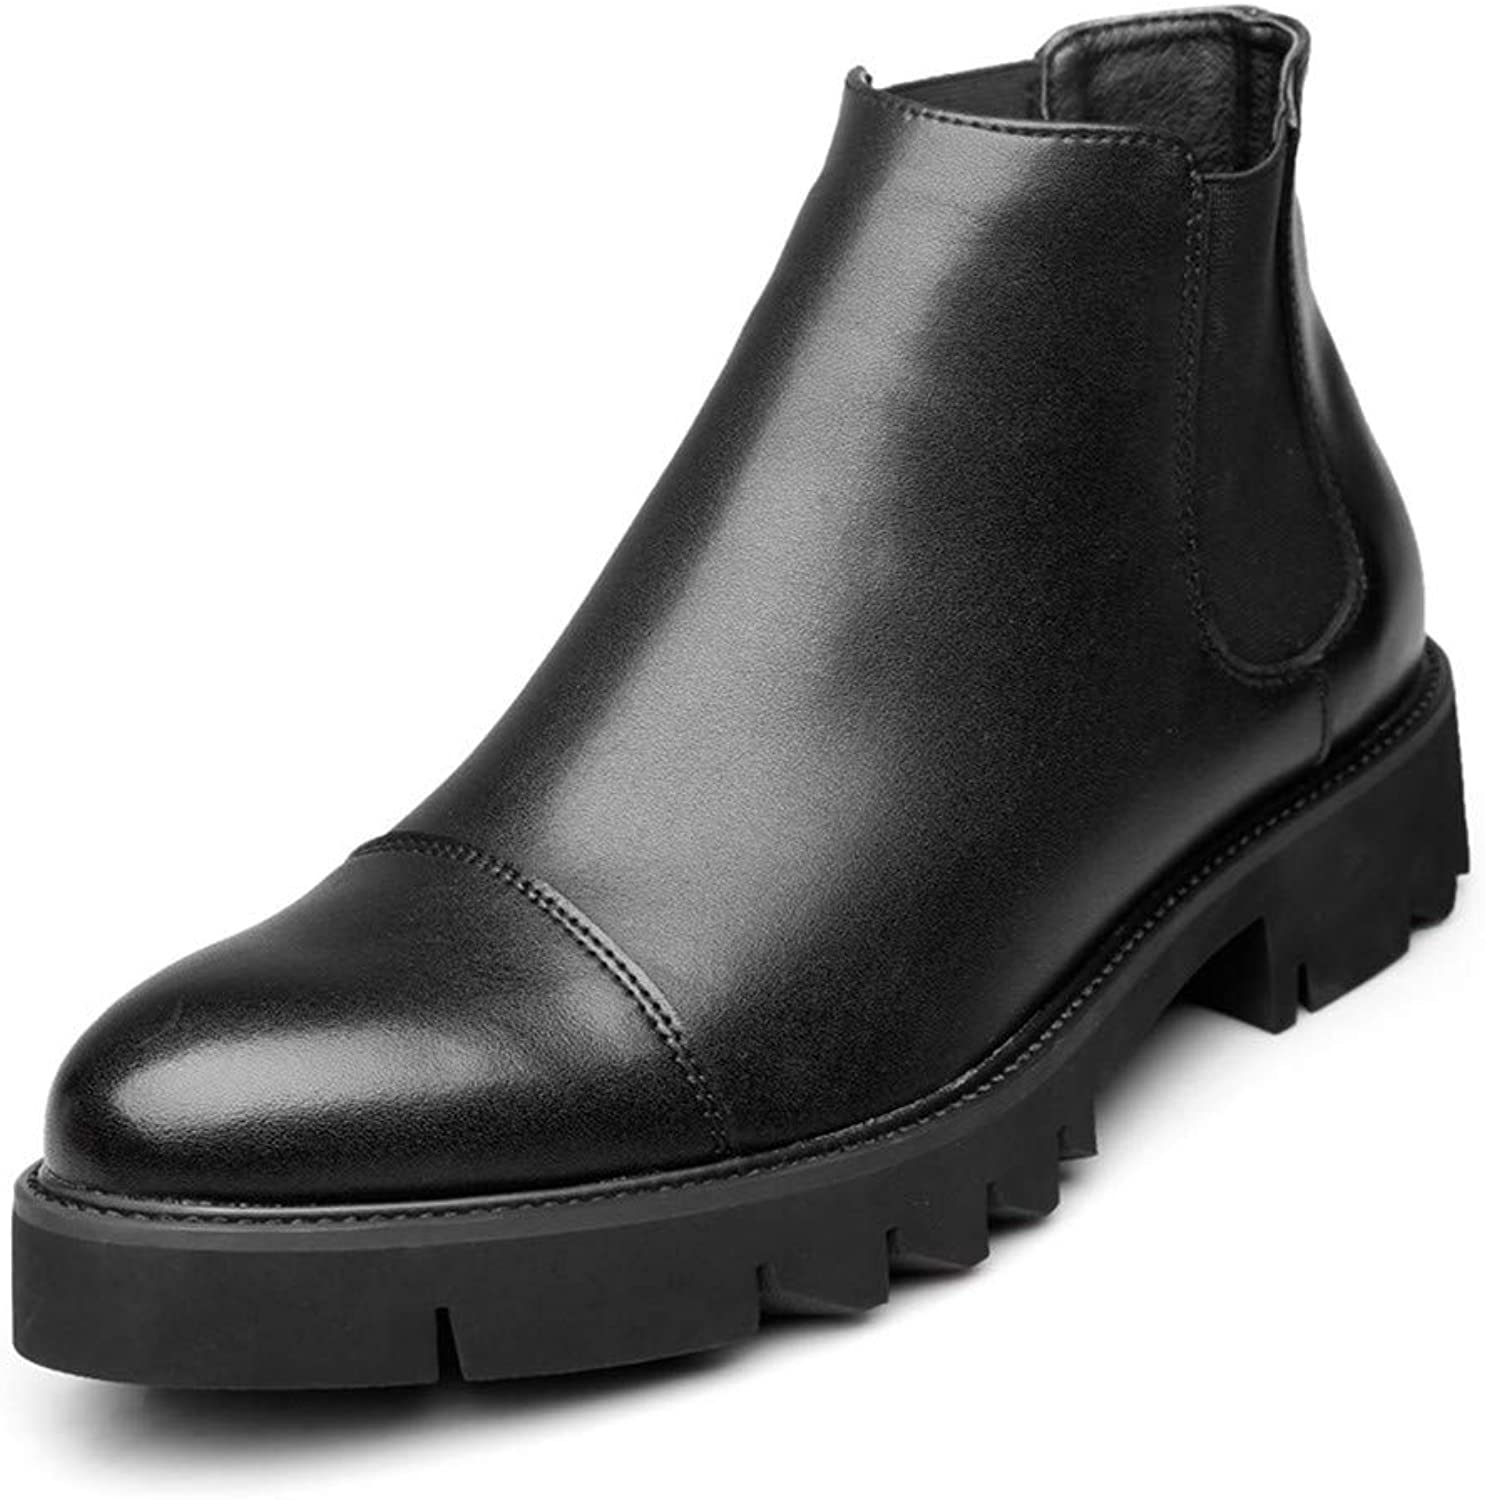 Men's Boots Autumn Boots, Fashion, Leisure, Men's Chelsea Boots